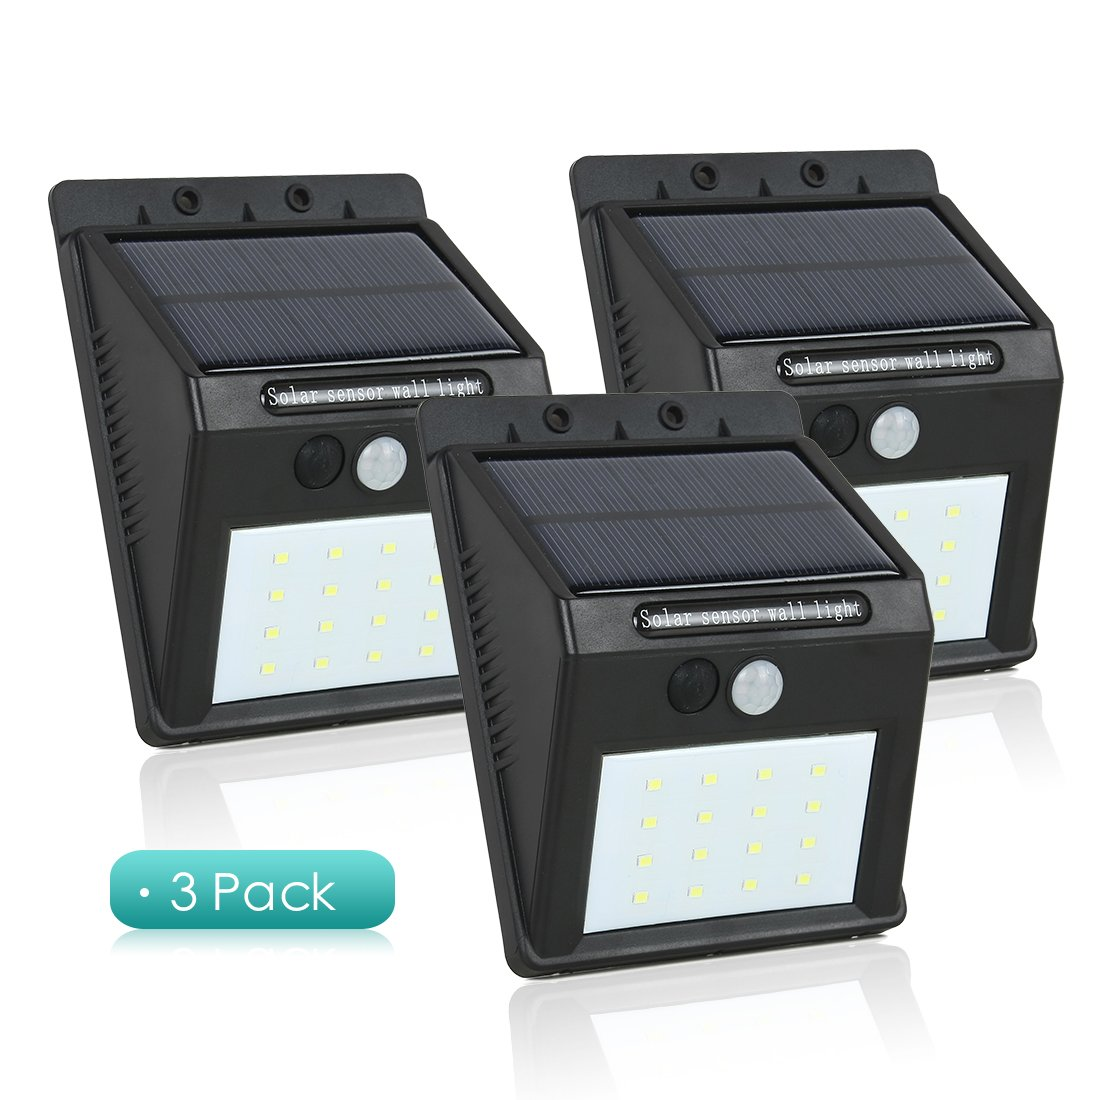 uxcell Solar Motion Sensor Light 16 LED Waterproof Wireless Solar Power Spotlight Garden Wall yard deck Bright Security Night Lights Motion Activated -3 Pack